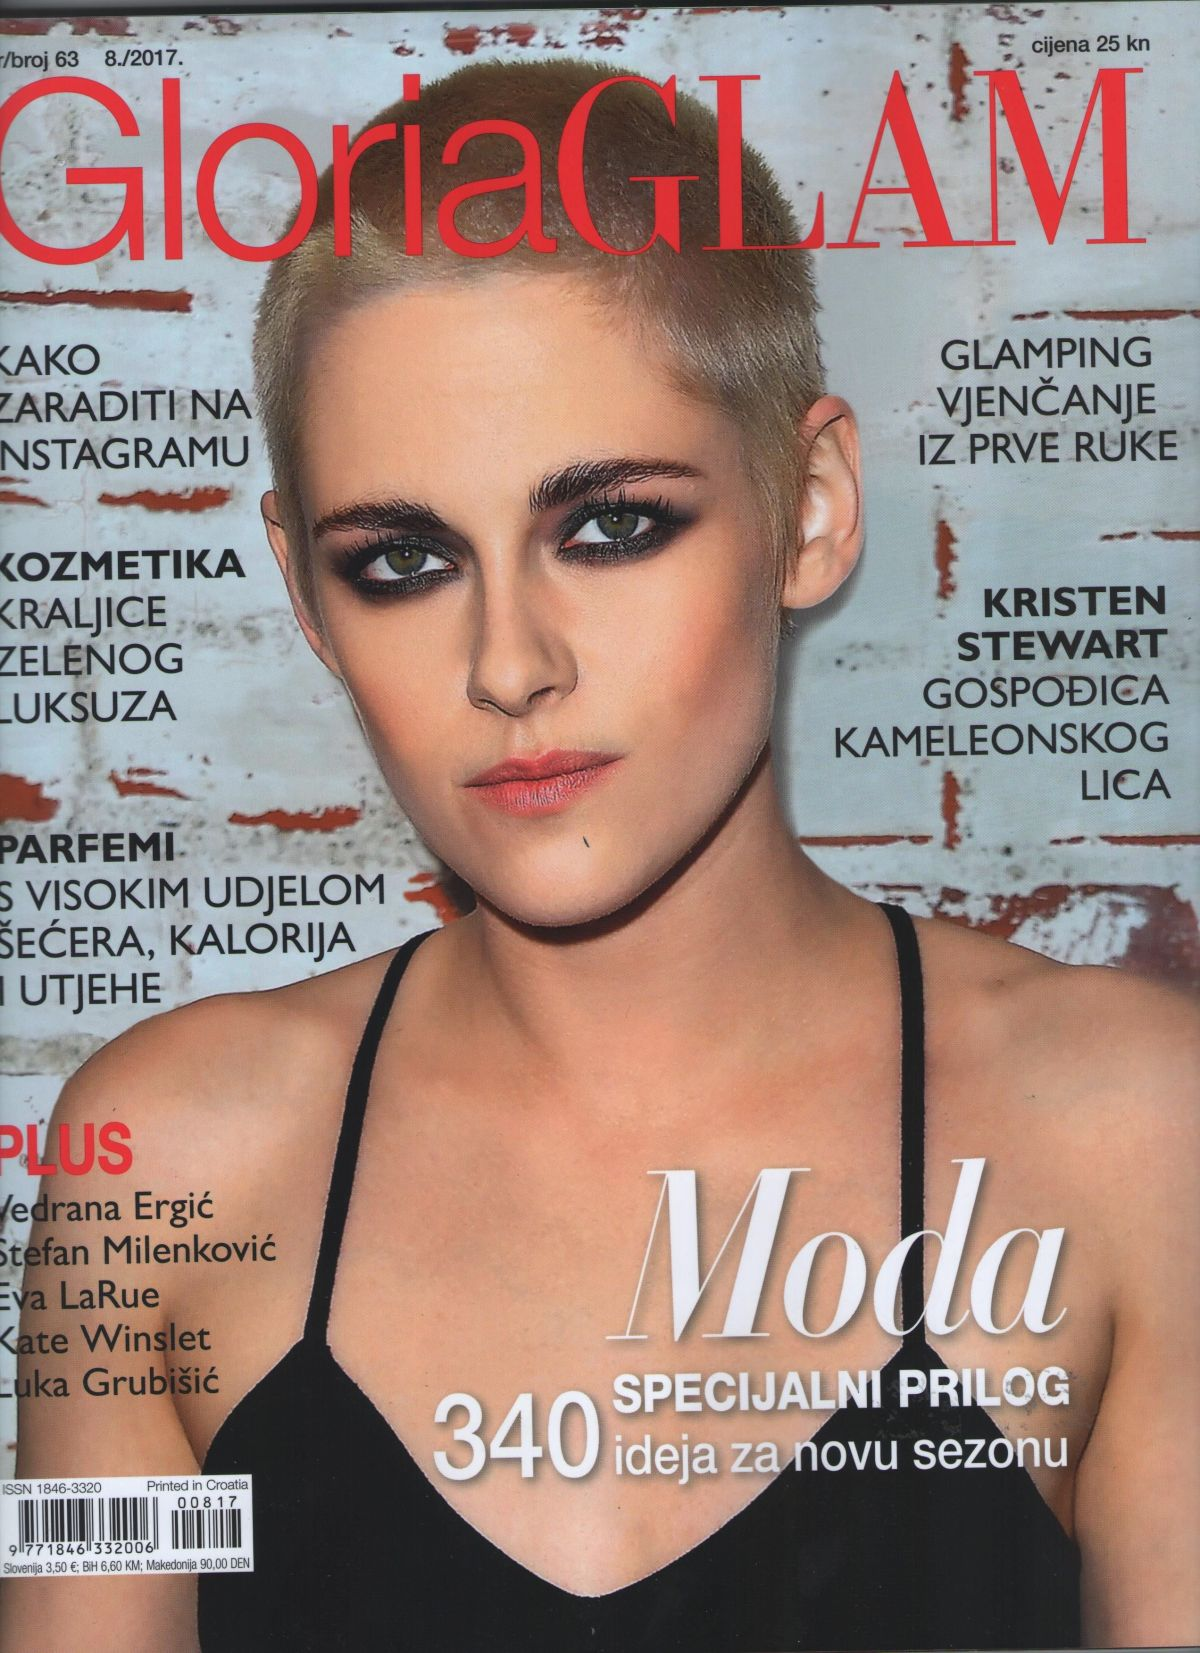 KRISTEN STEWART in GloriaGLAM Magazine, Croatia September 2017